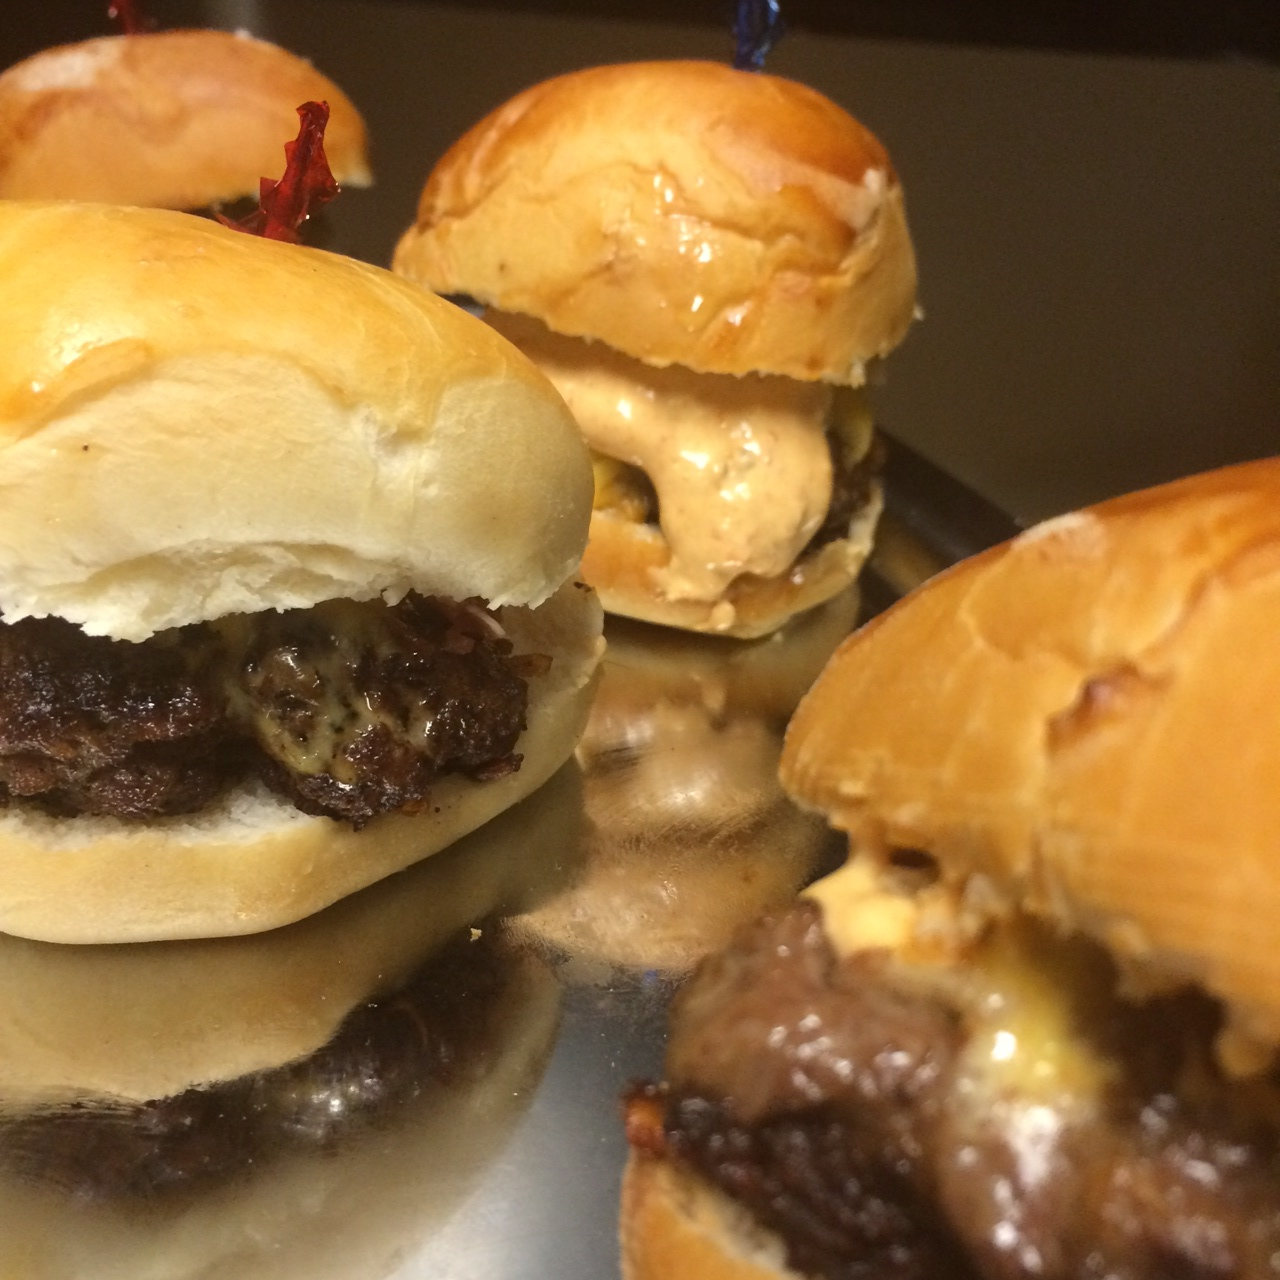 The Sliders with Chipotle Aioli